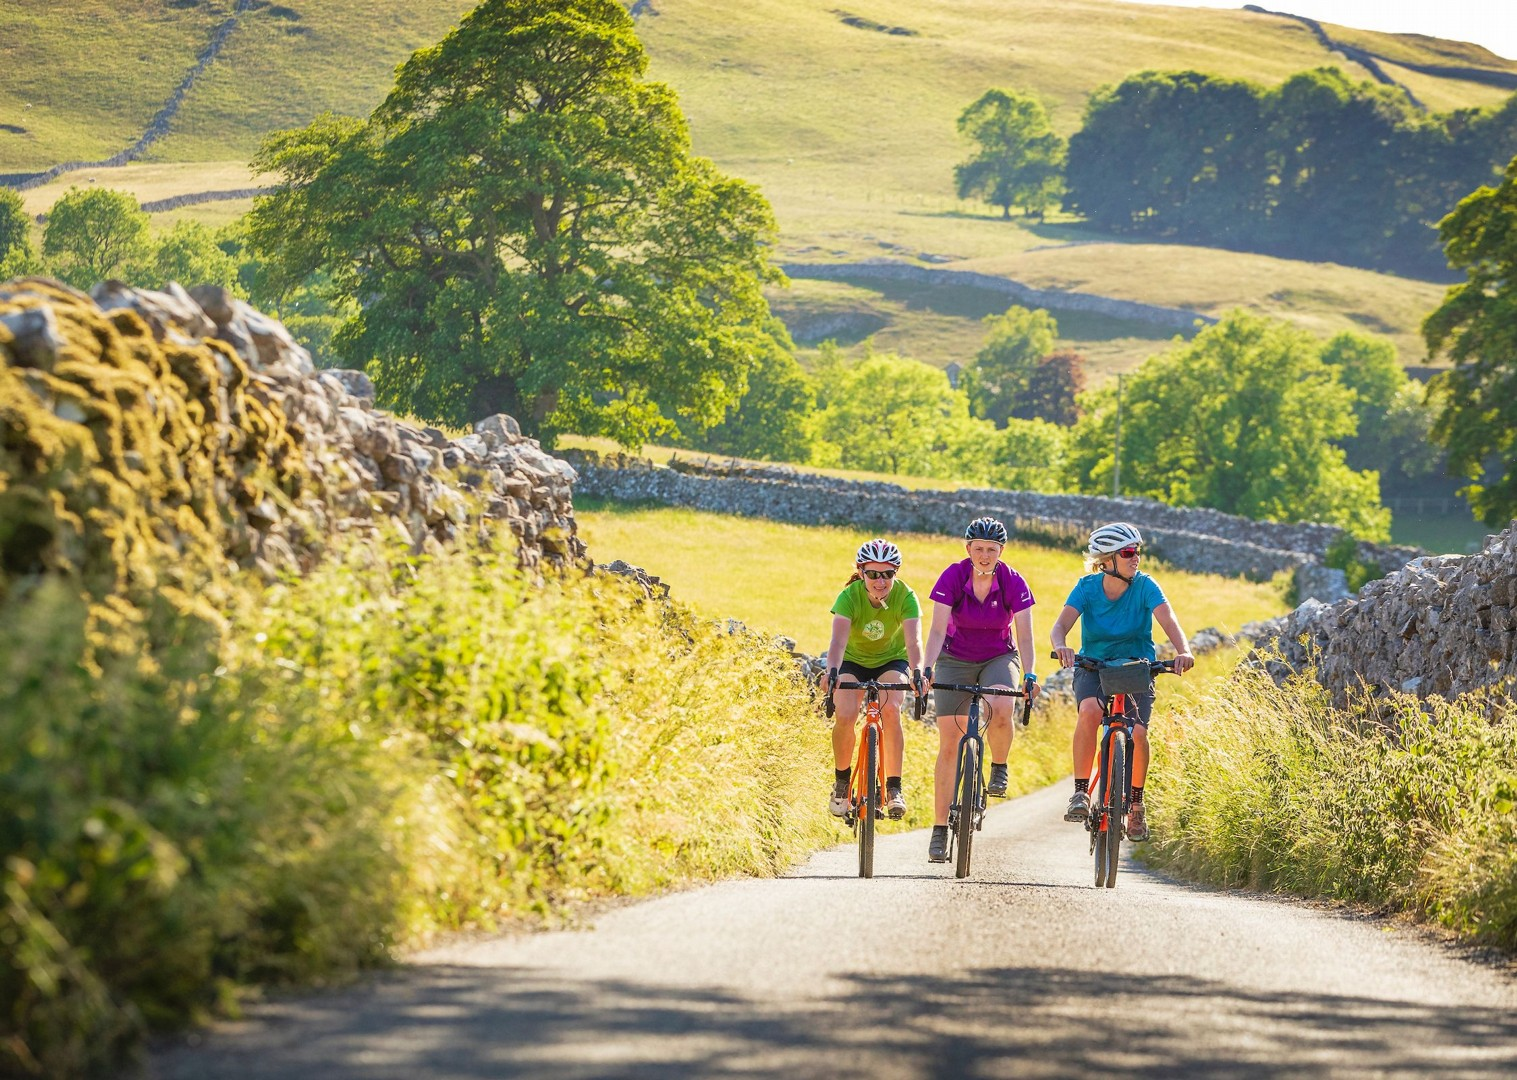 yorkshire-dales-leisure-biking-uk-holiday.jpg - UK - Way of the Roses 5 Days Cycling - Self-Guided Leisure Cycling Holiday - Leisure Cycling